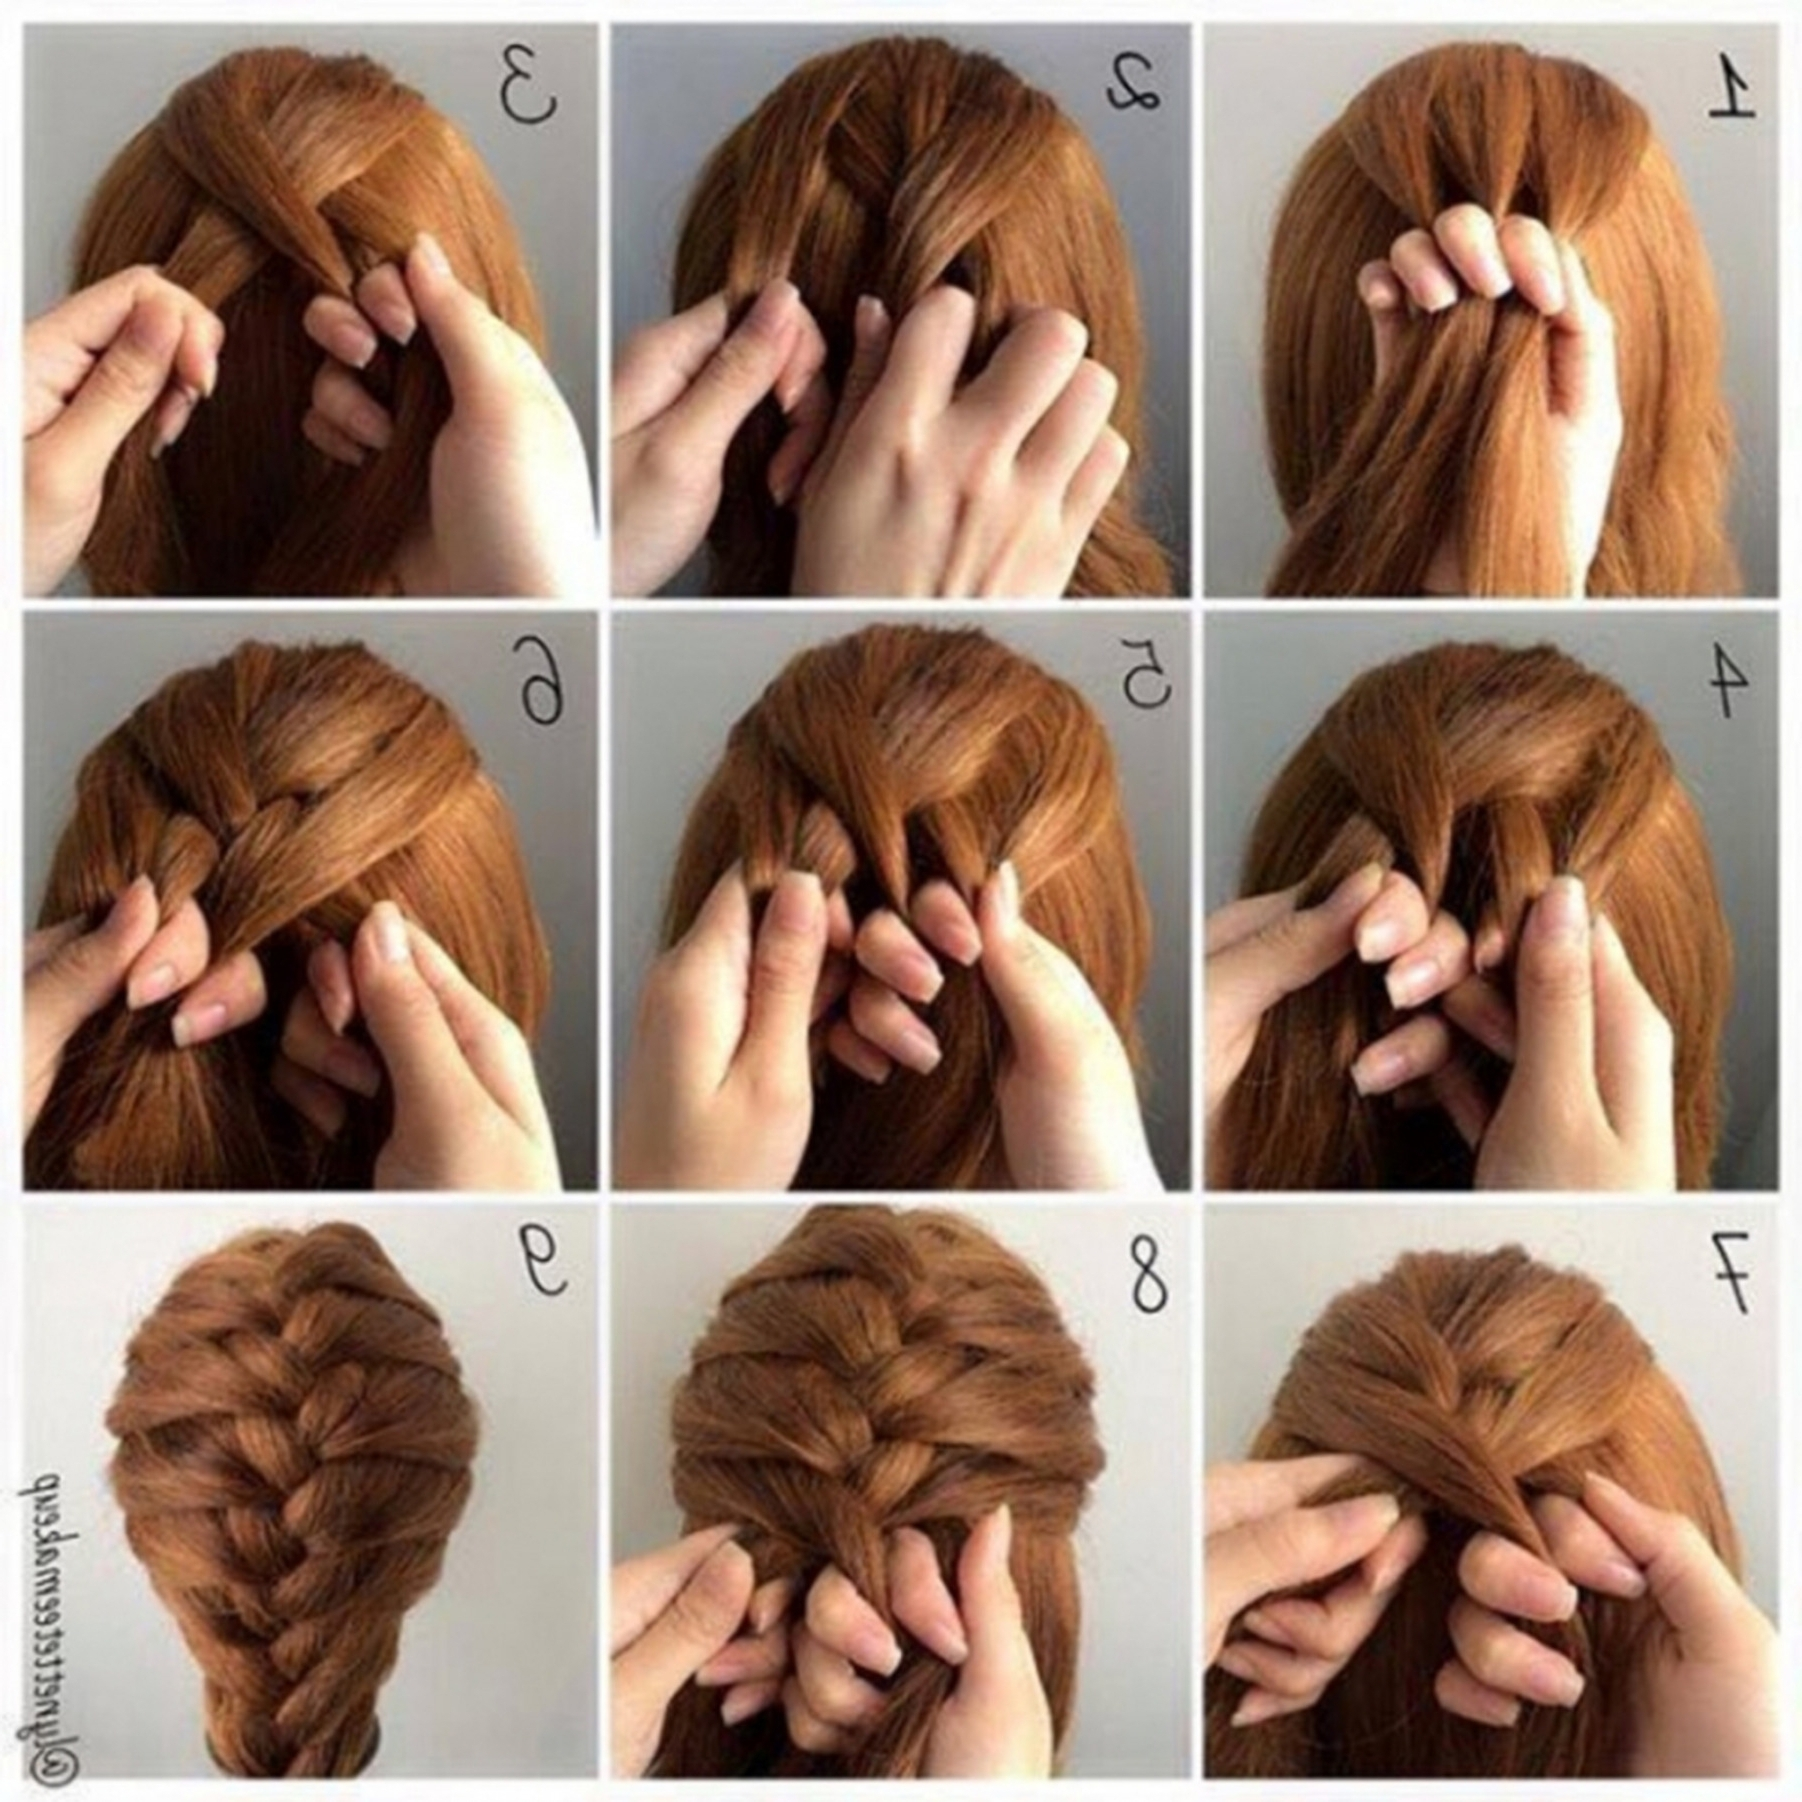 Fashionable Braid Hairstyle For Shoulder Length Hair (View 7 of 15)